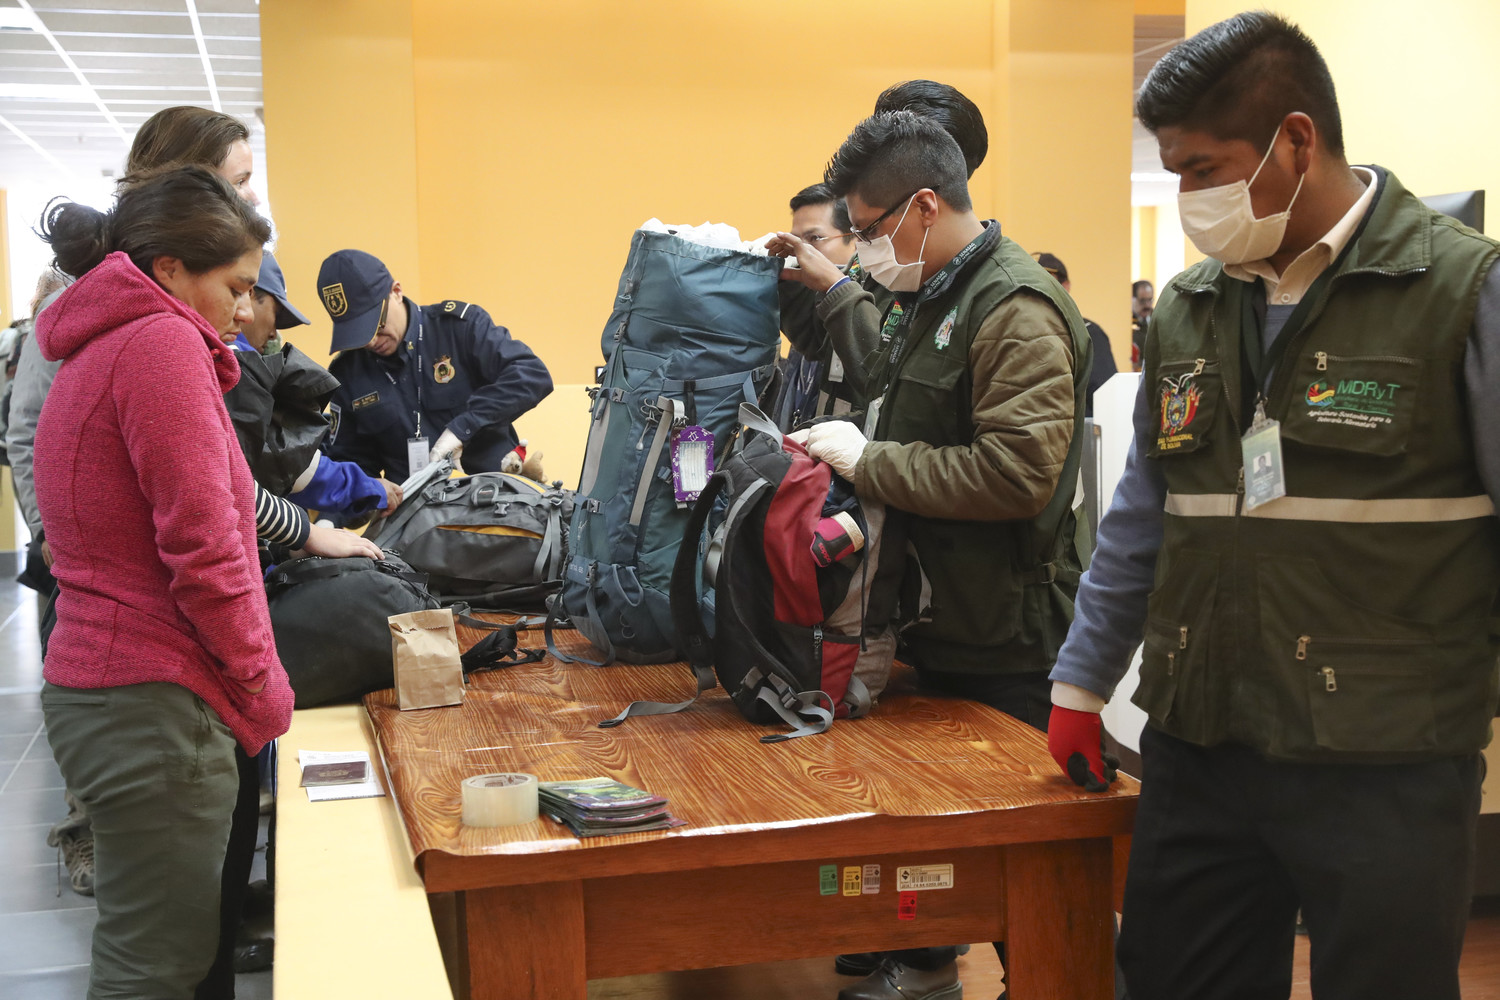 Bolivian and Peruvian customs officers check tourists' luggage in late April at the Binational Border Attention Center of Peru and Bolivia in Desaguadero, Peru.